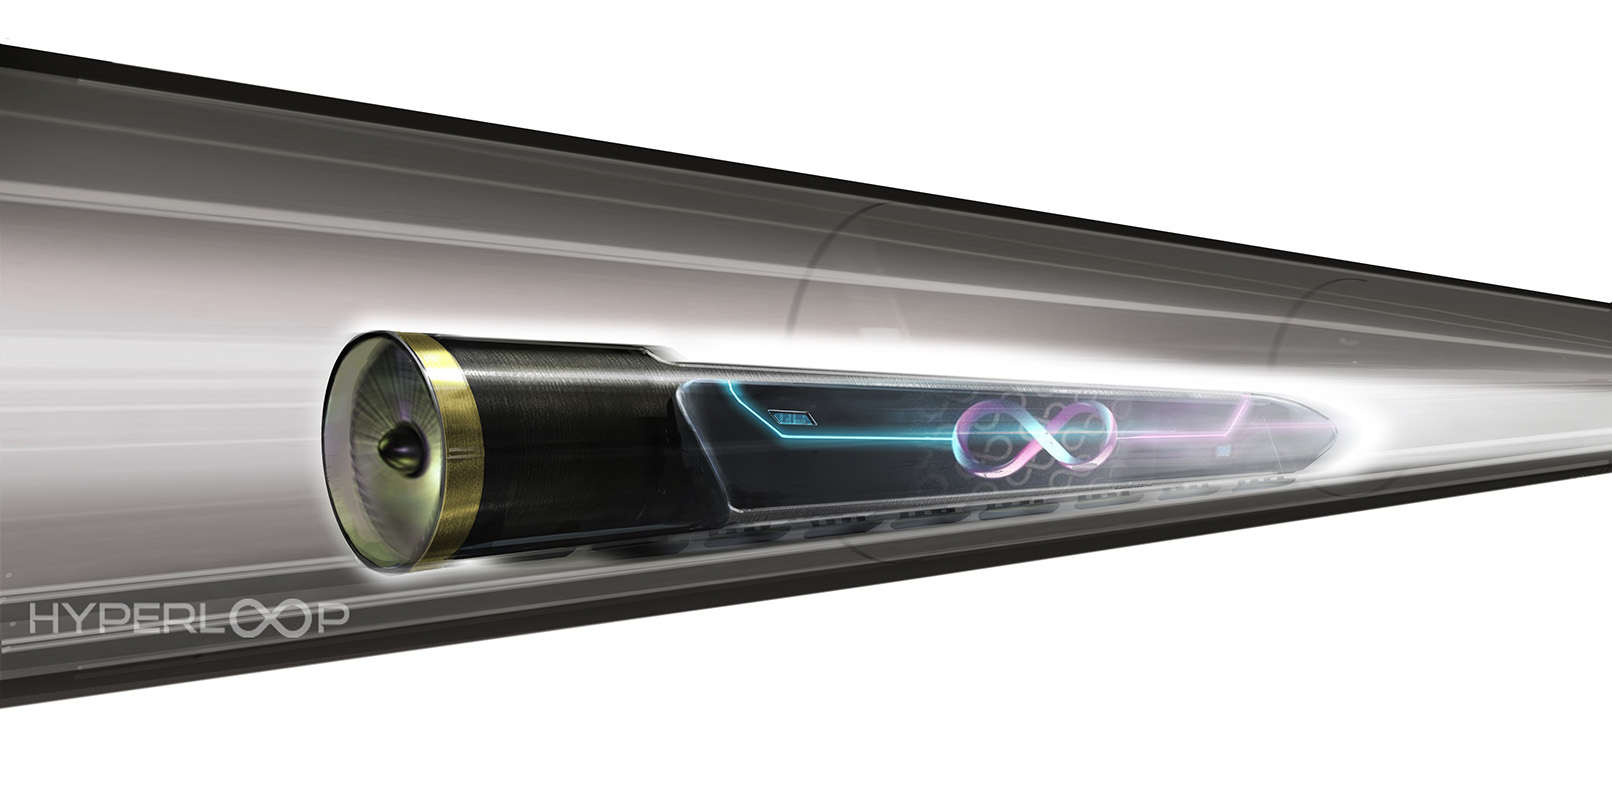 Un 5ème mode de transport : l'Hyperloop